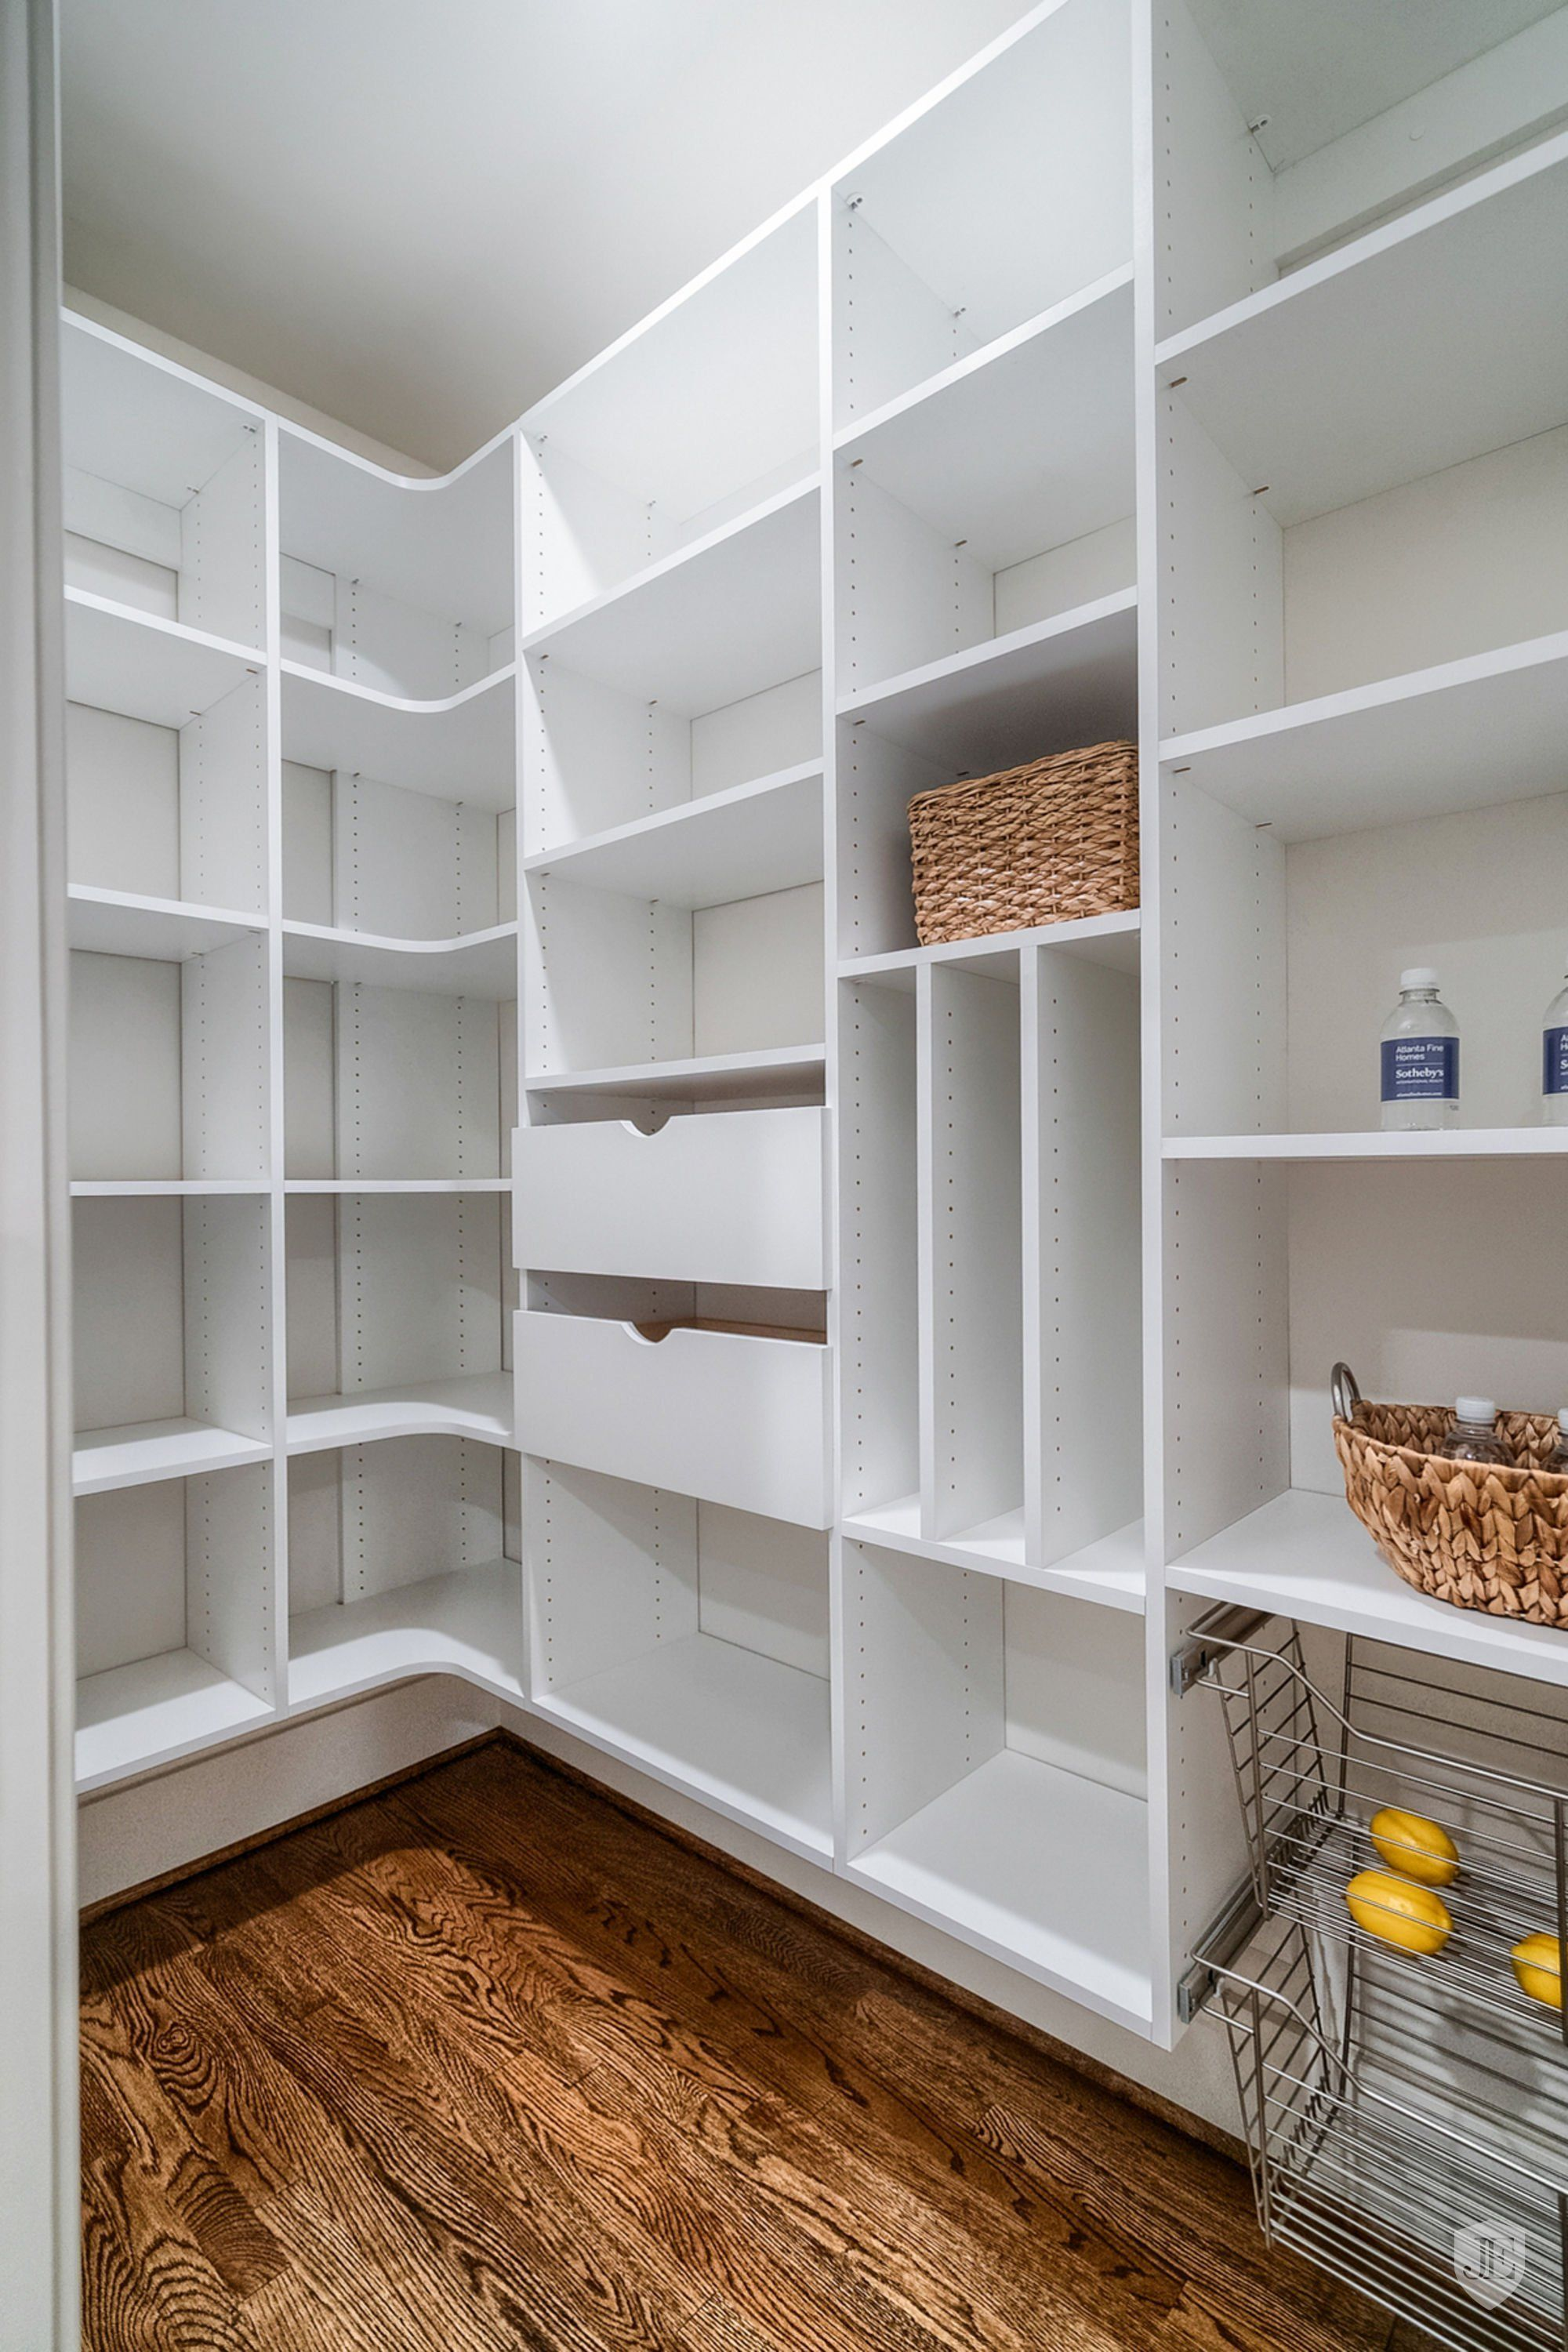 Stunning Modern Farmhouse In The Heart Of Roswell in Roswell, GA, United States for sale on JamesEdition #pantryshelving